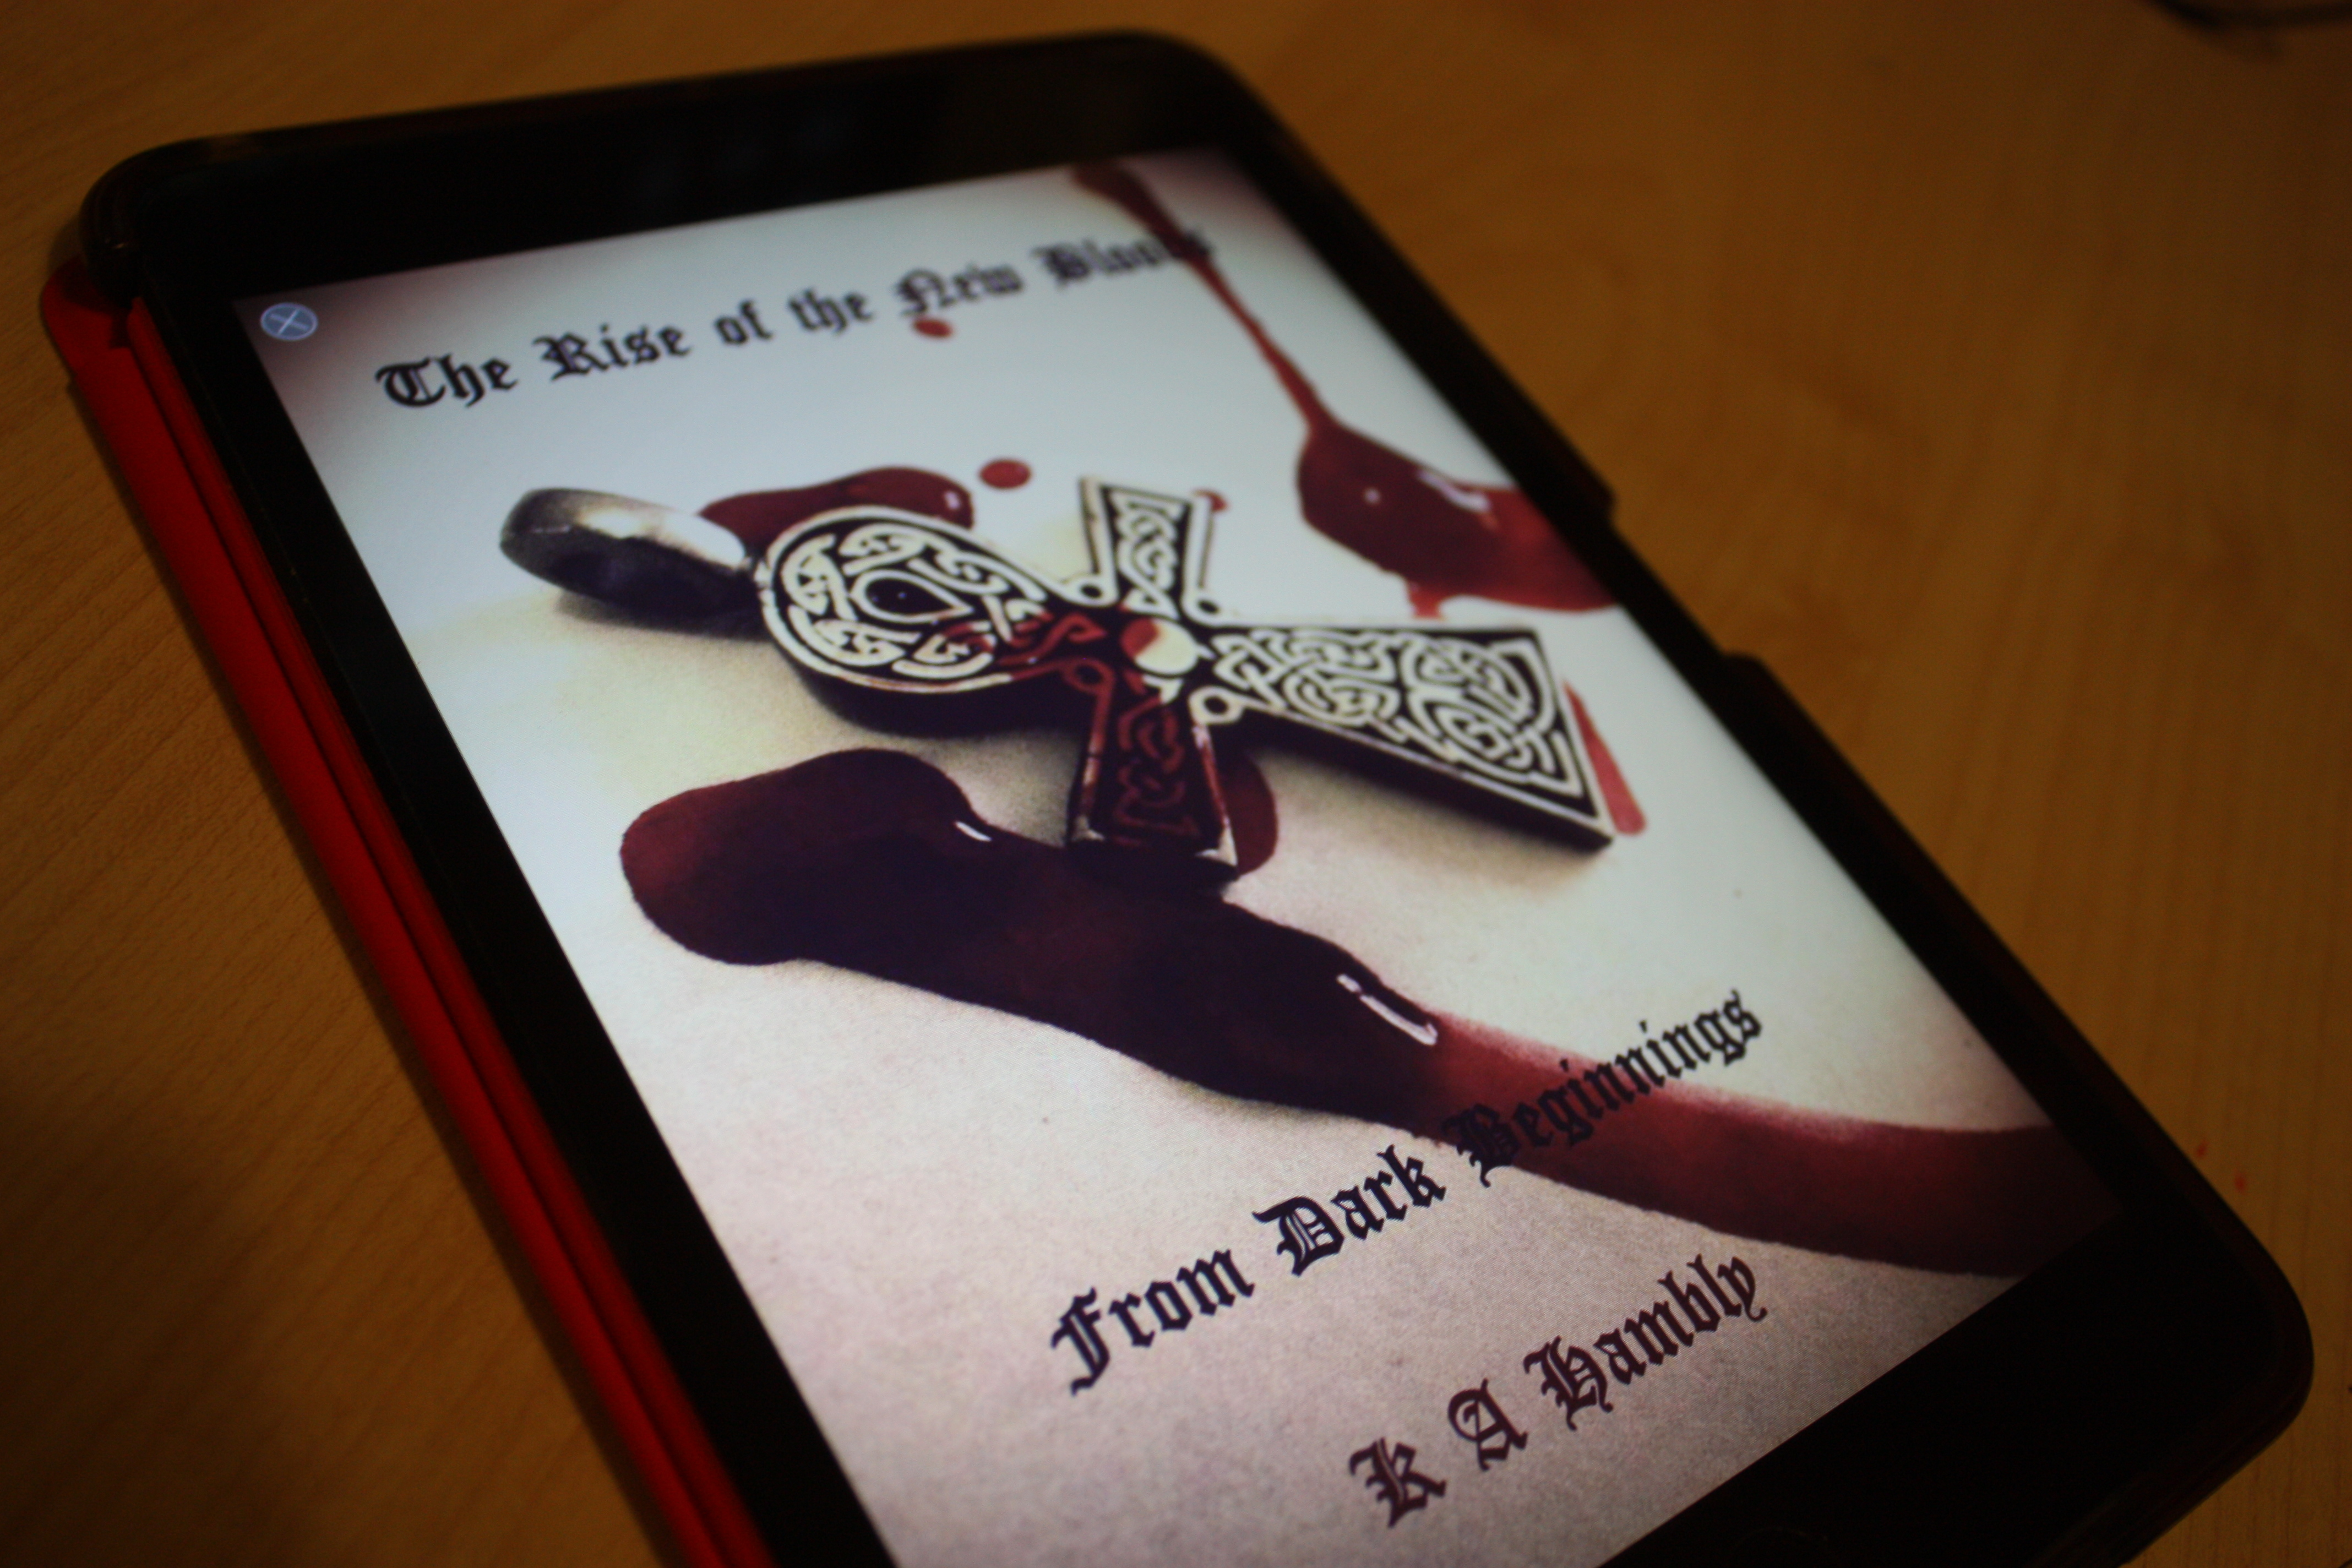 The Rise Of The New Bloods: From Dark Beginnings by K. A. Hambly